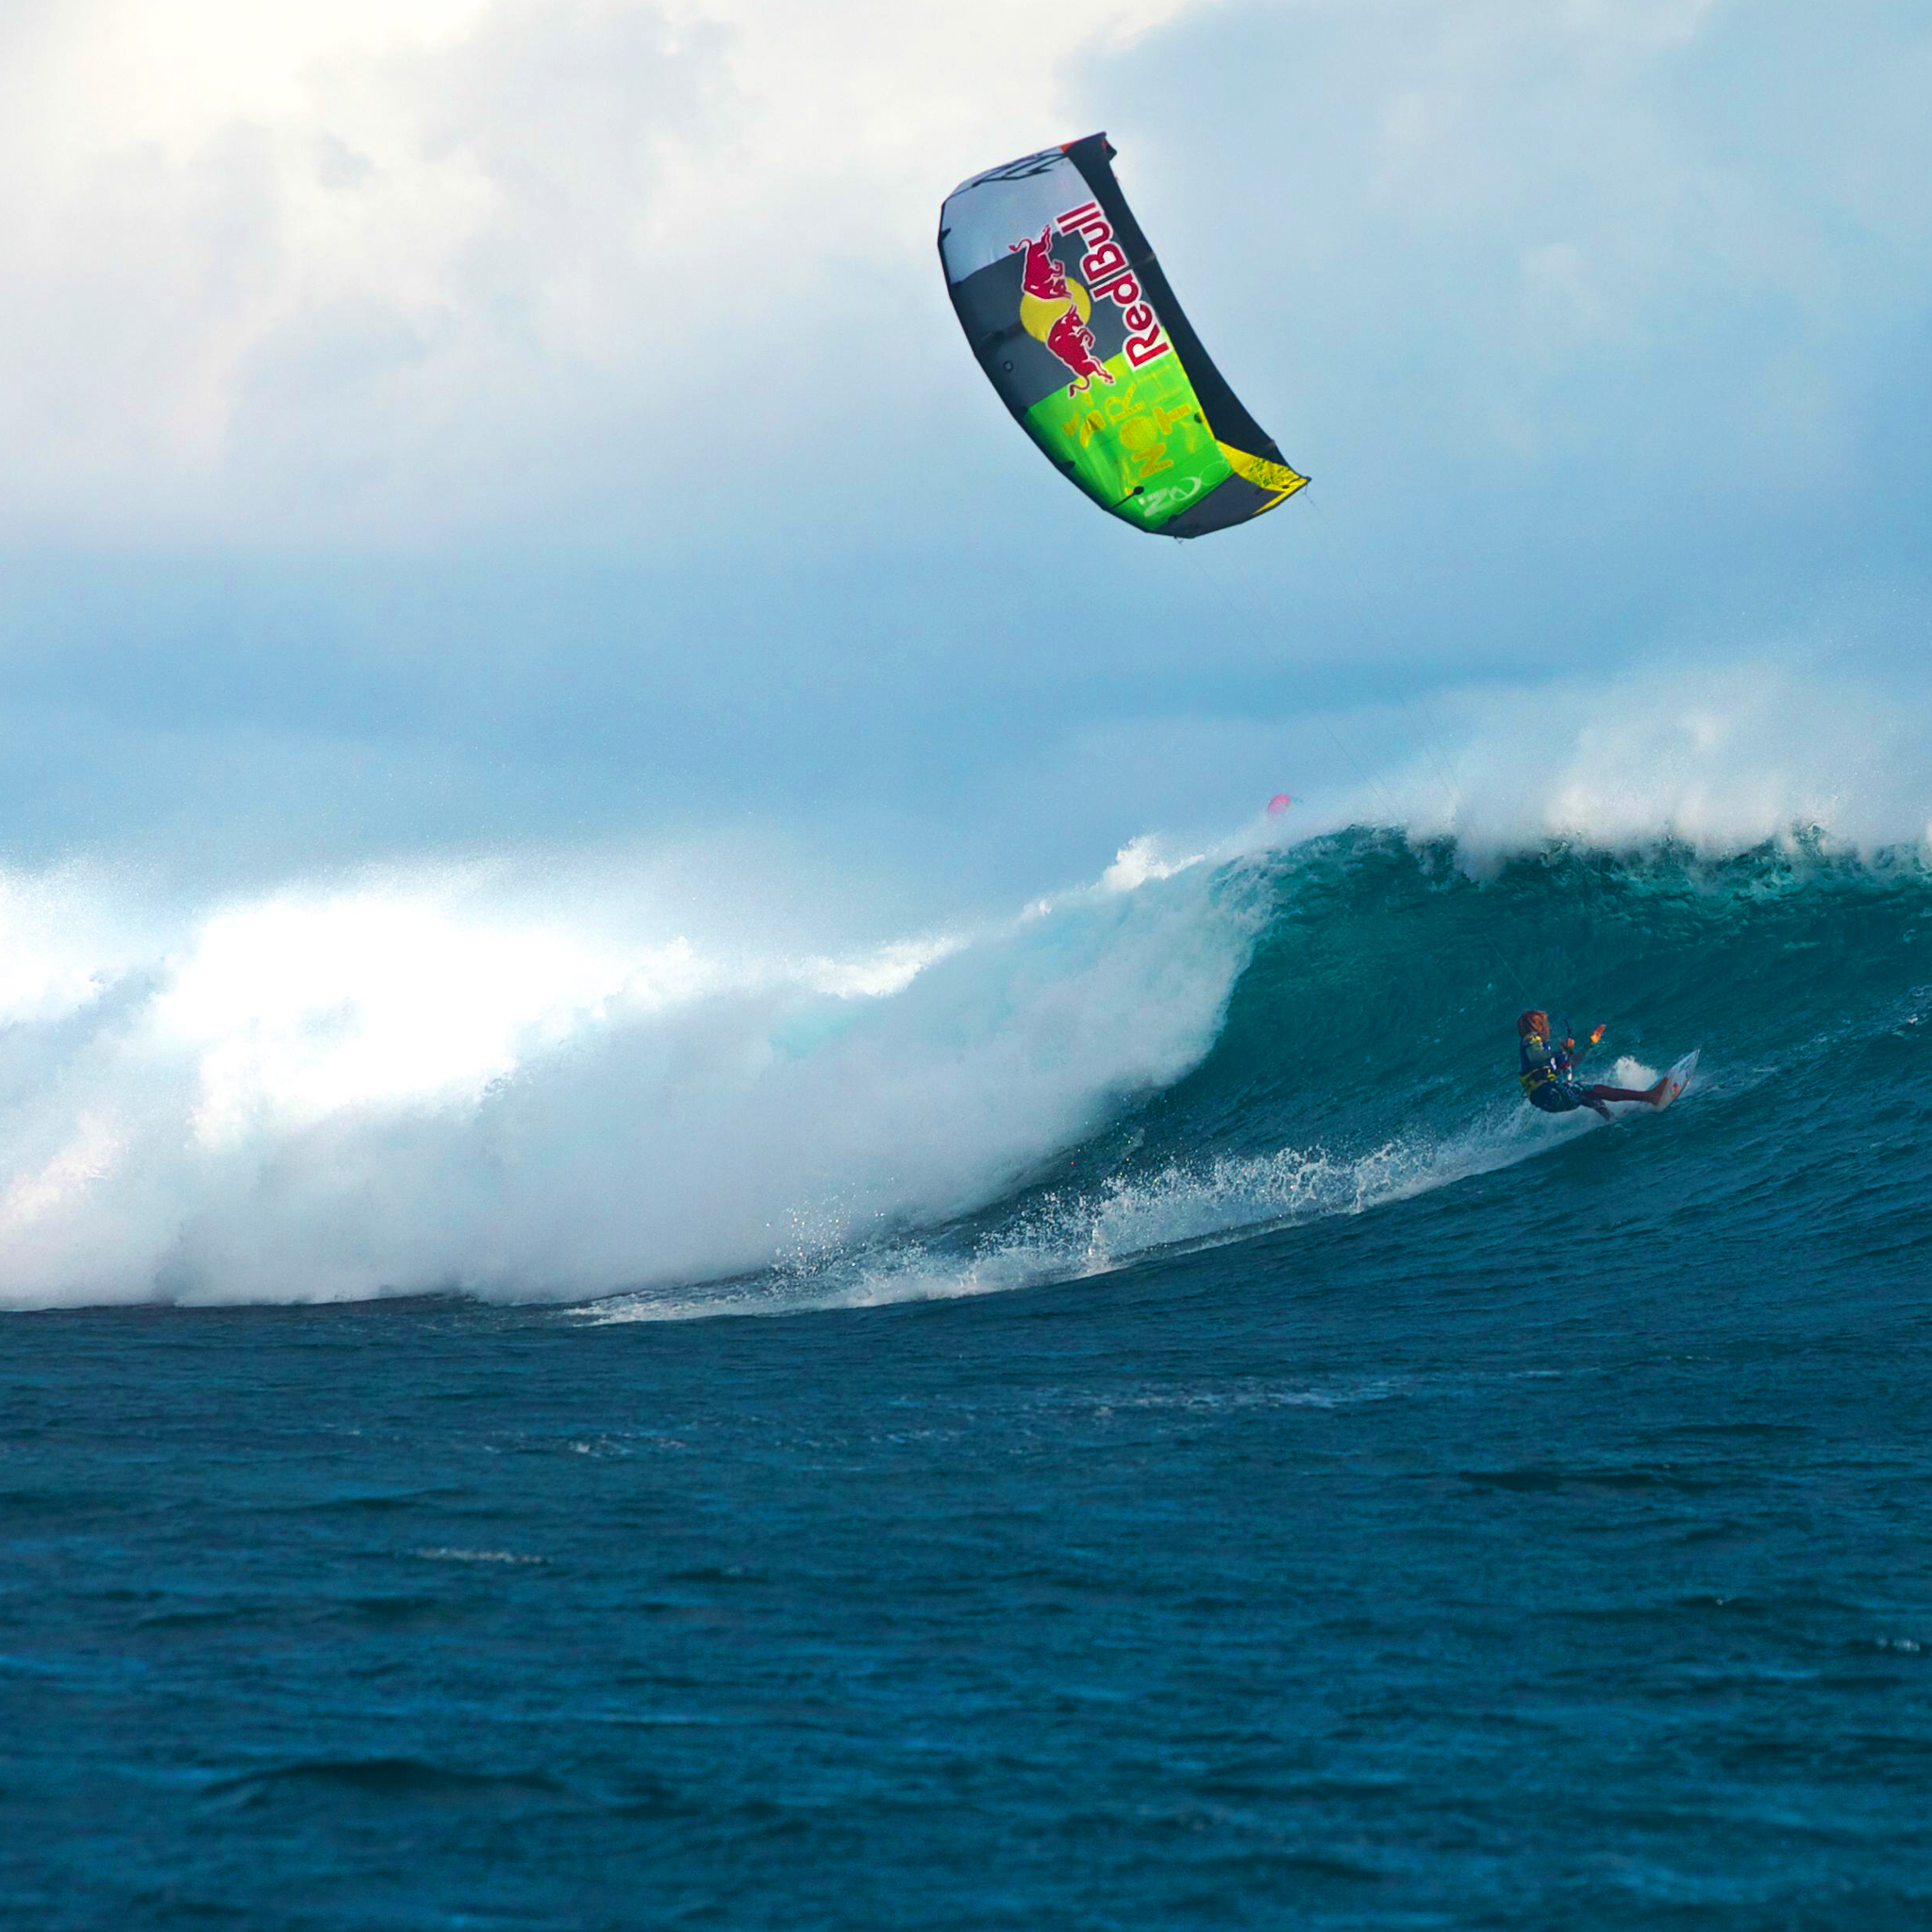 kitesurf wallpaper image - Airton Cozzolino loading up on a wave - in resolution: iPad 2 & 3 2048 X 2048